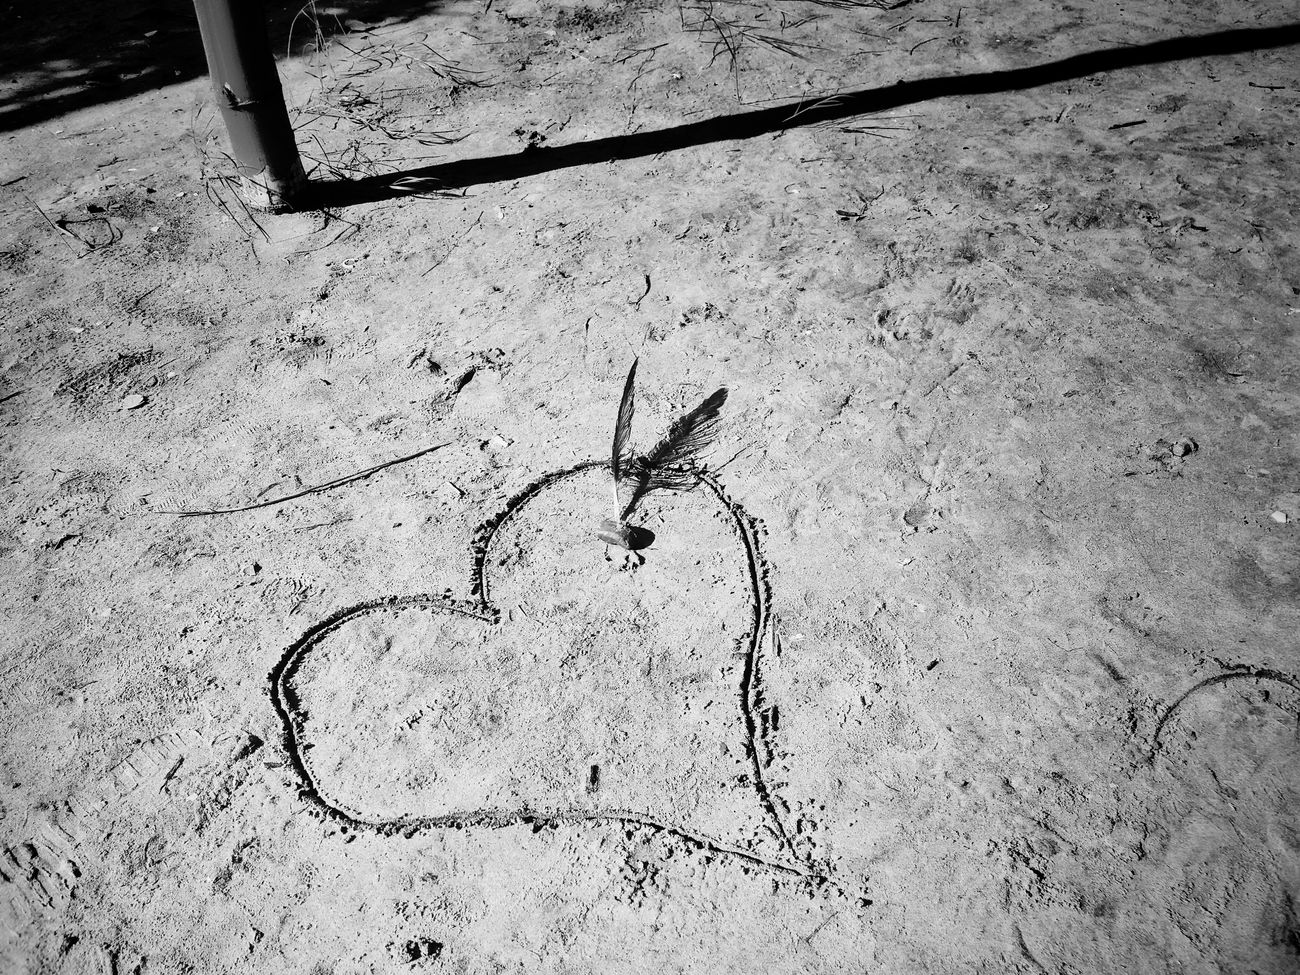 Just A Feeling High Angle View No People Day Close-up Nature Outdoors Good Times Lifestyles Full Frame Beach Sand Heart Shape Love Drawn Drawing Sand Drawing The Week On Eyem